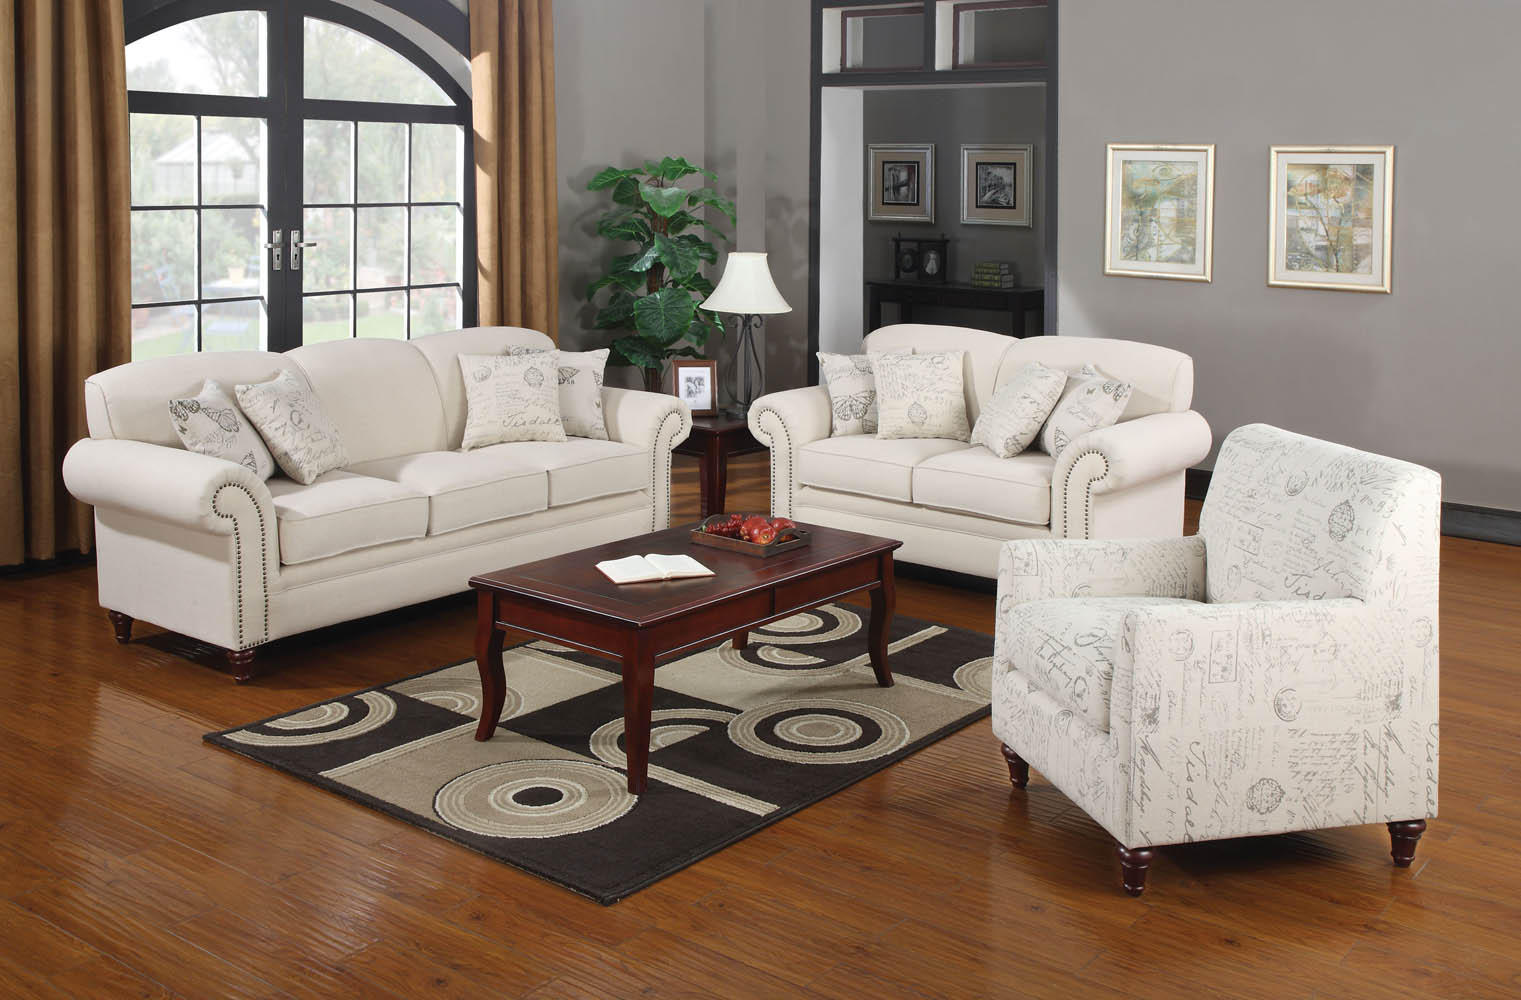 3 Piece Oatmeal Linen Fabric Sofa Set